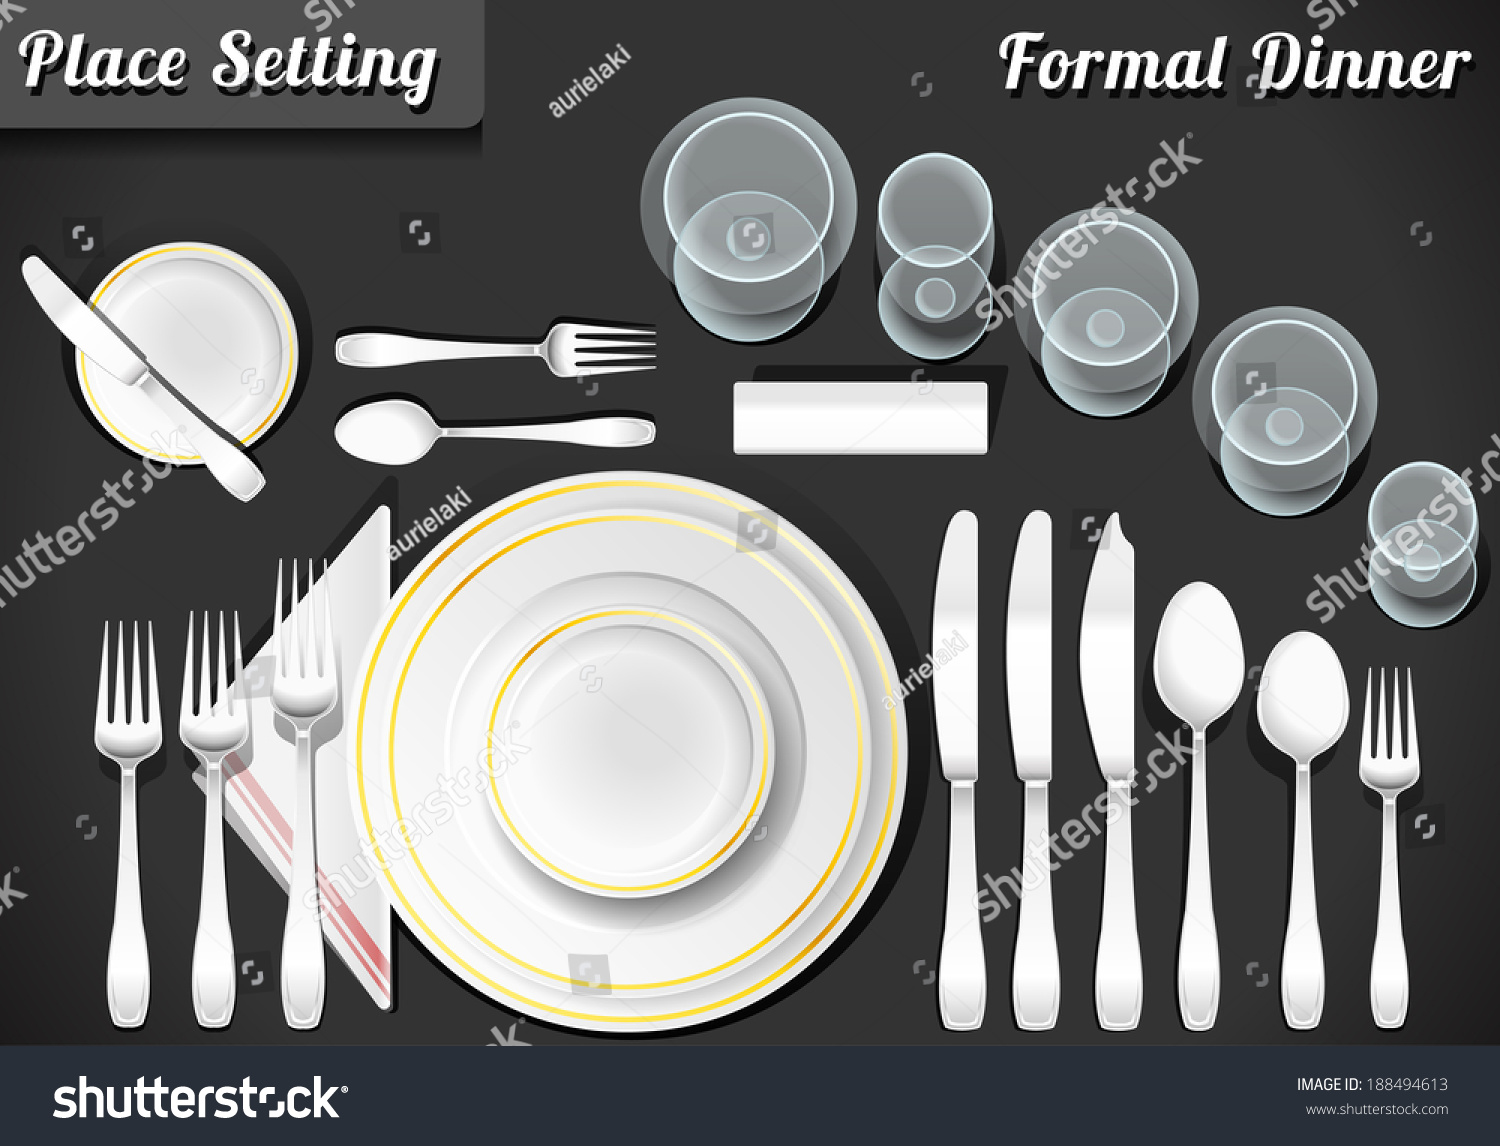 Setting Place Formal Placemat Place Setting Vectores En